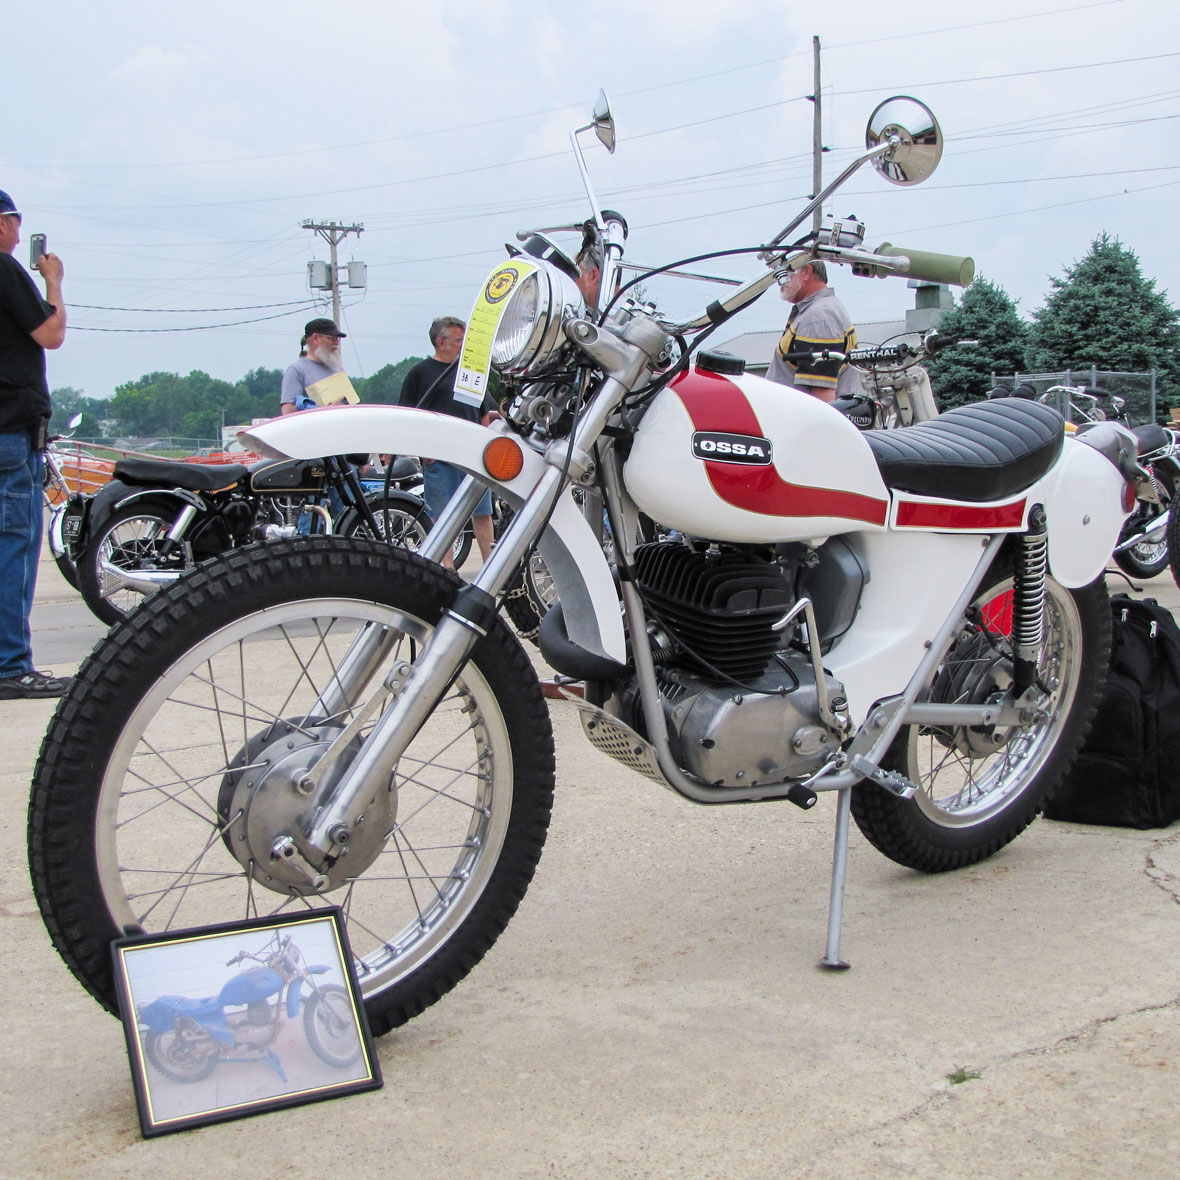 Vintage Rally 2014 Where People And Motorcycles Come Together